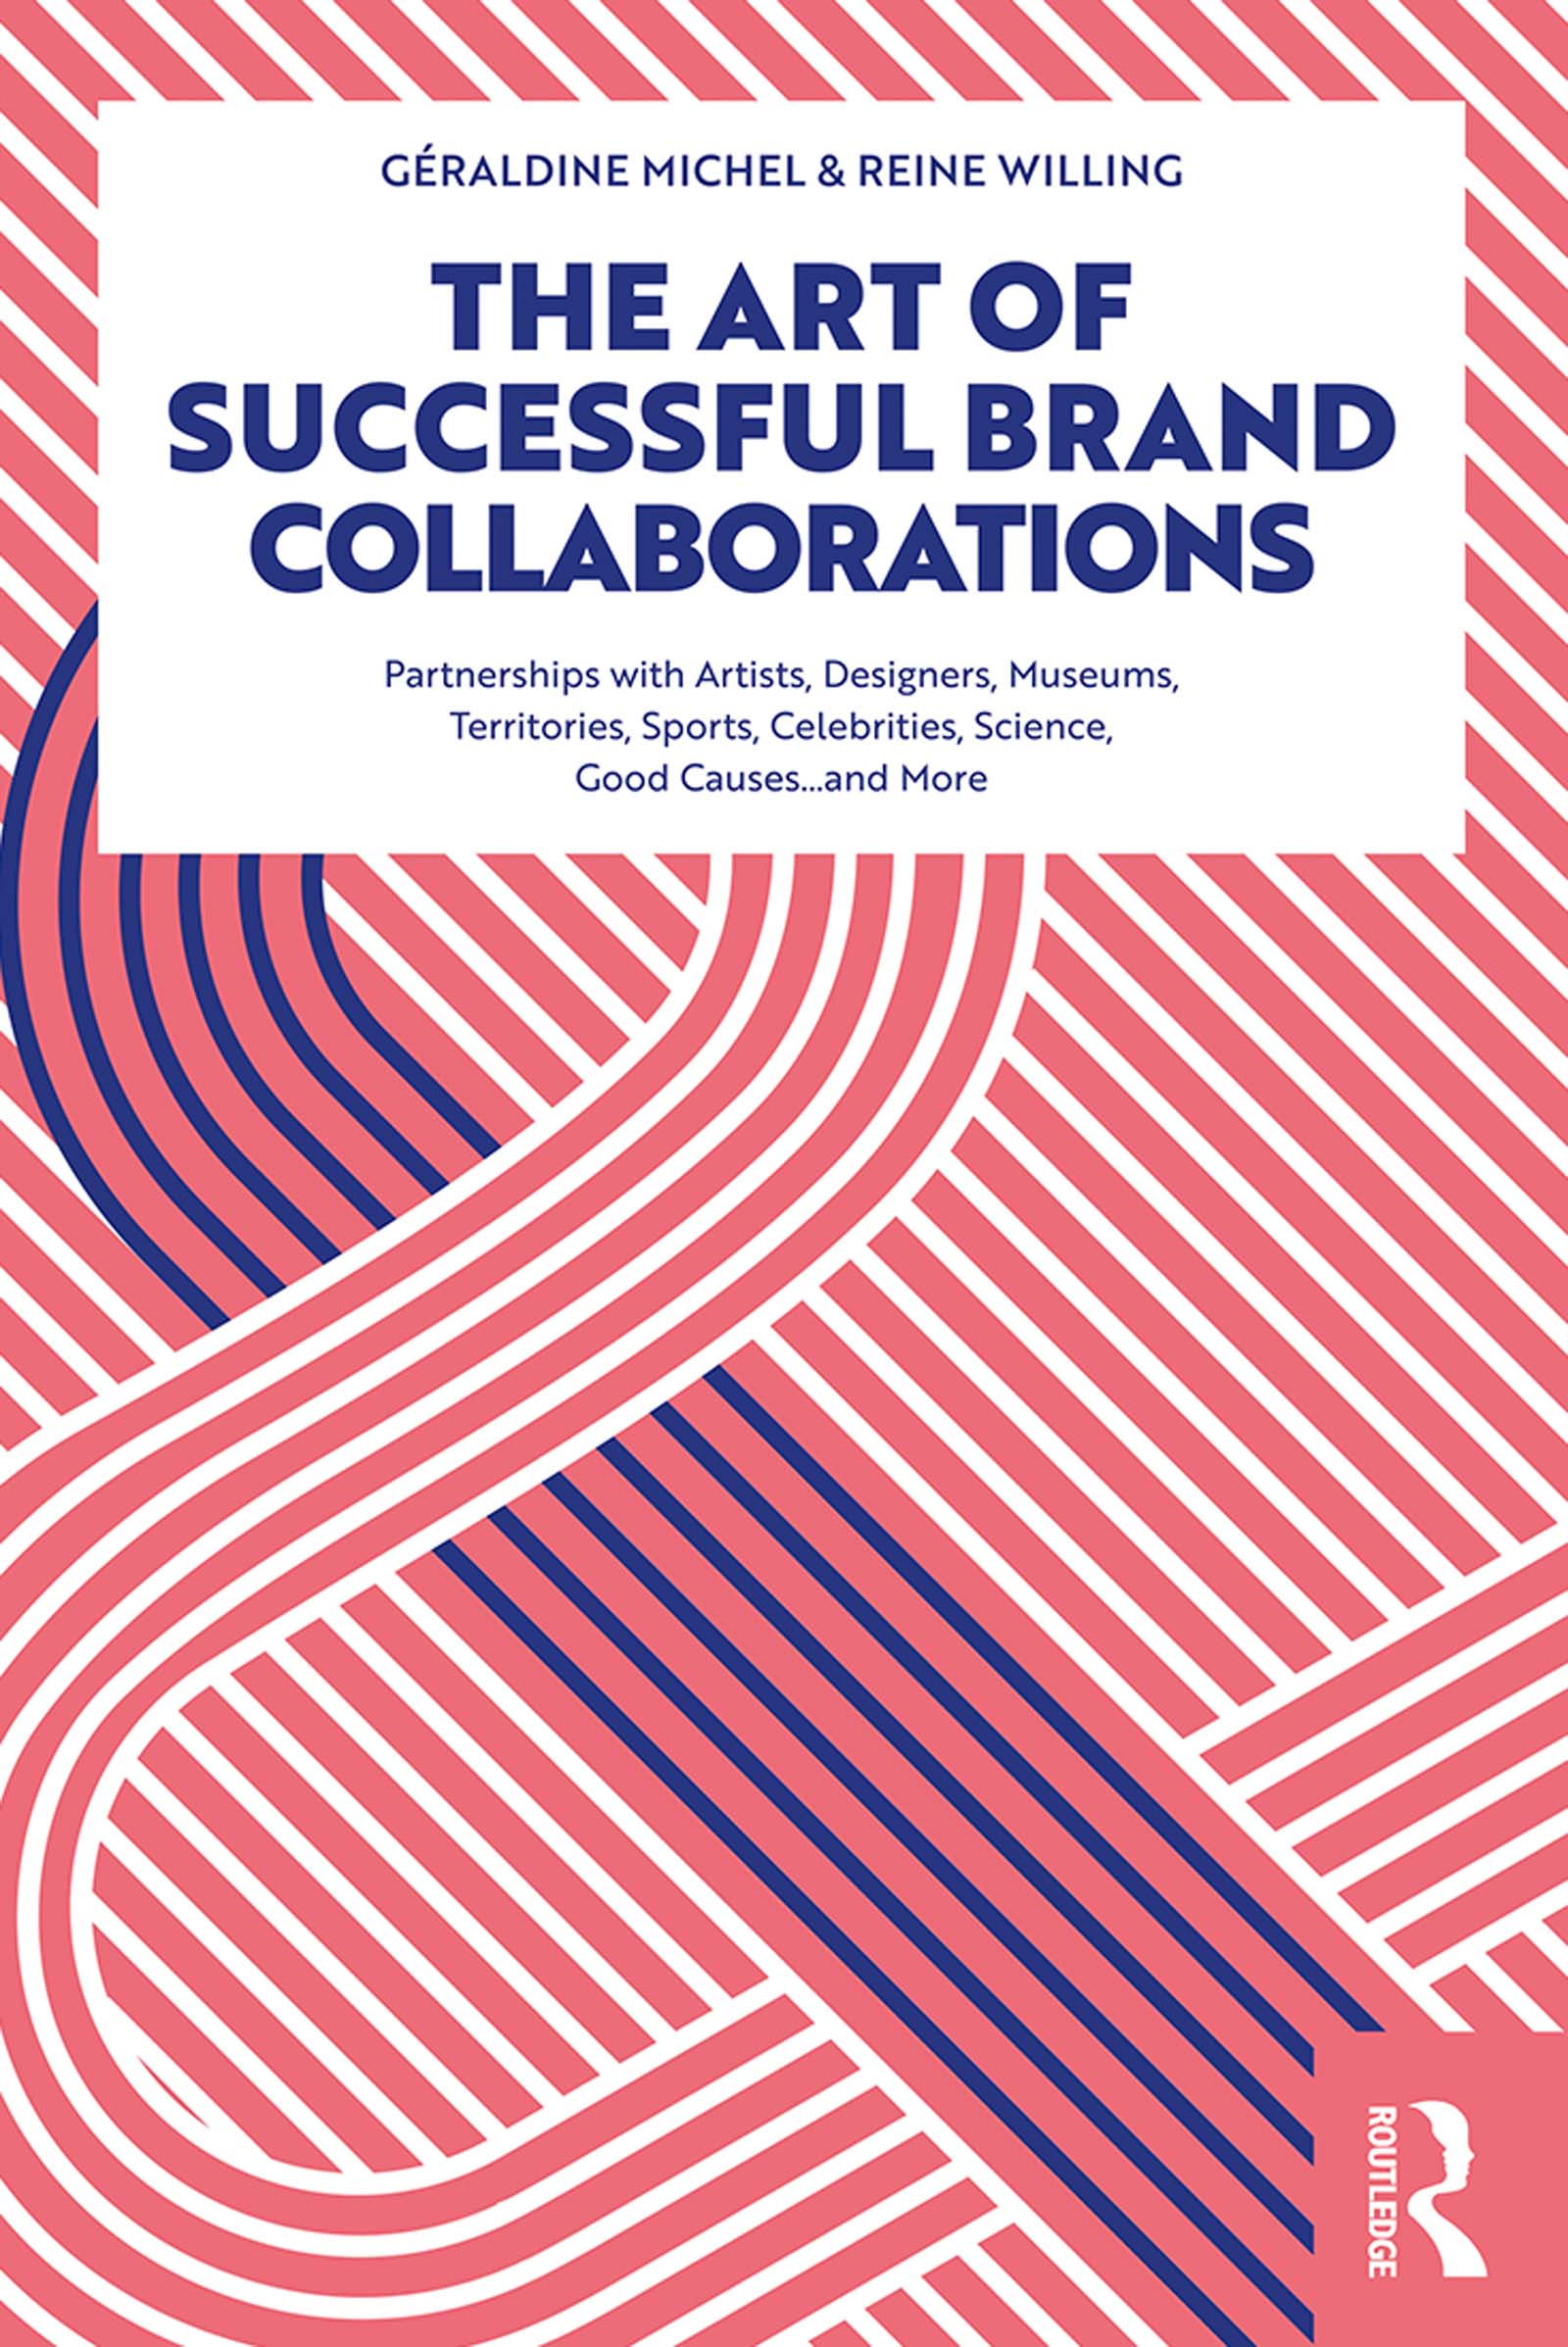 The Art of Successful Brand Collaborations: Partnerships with Artists, Designers, Museums, Territories, Sports, Celebrities, Science, Good Cause…and More book cover